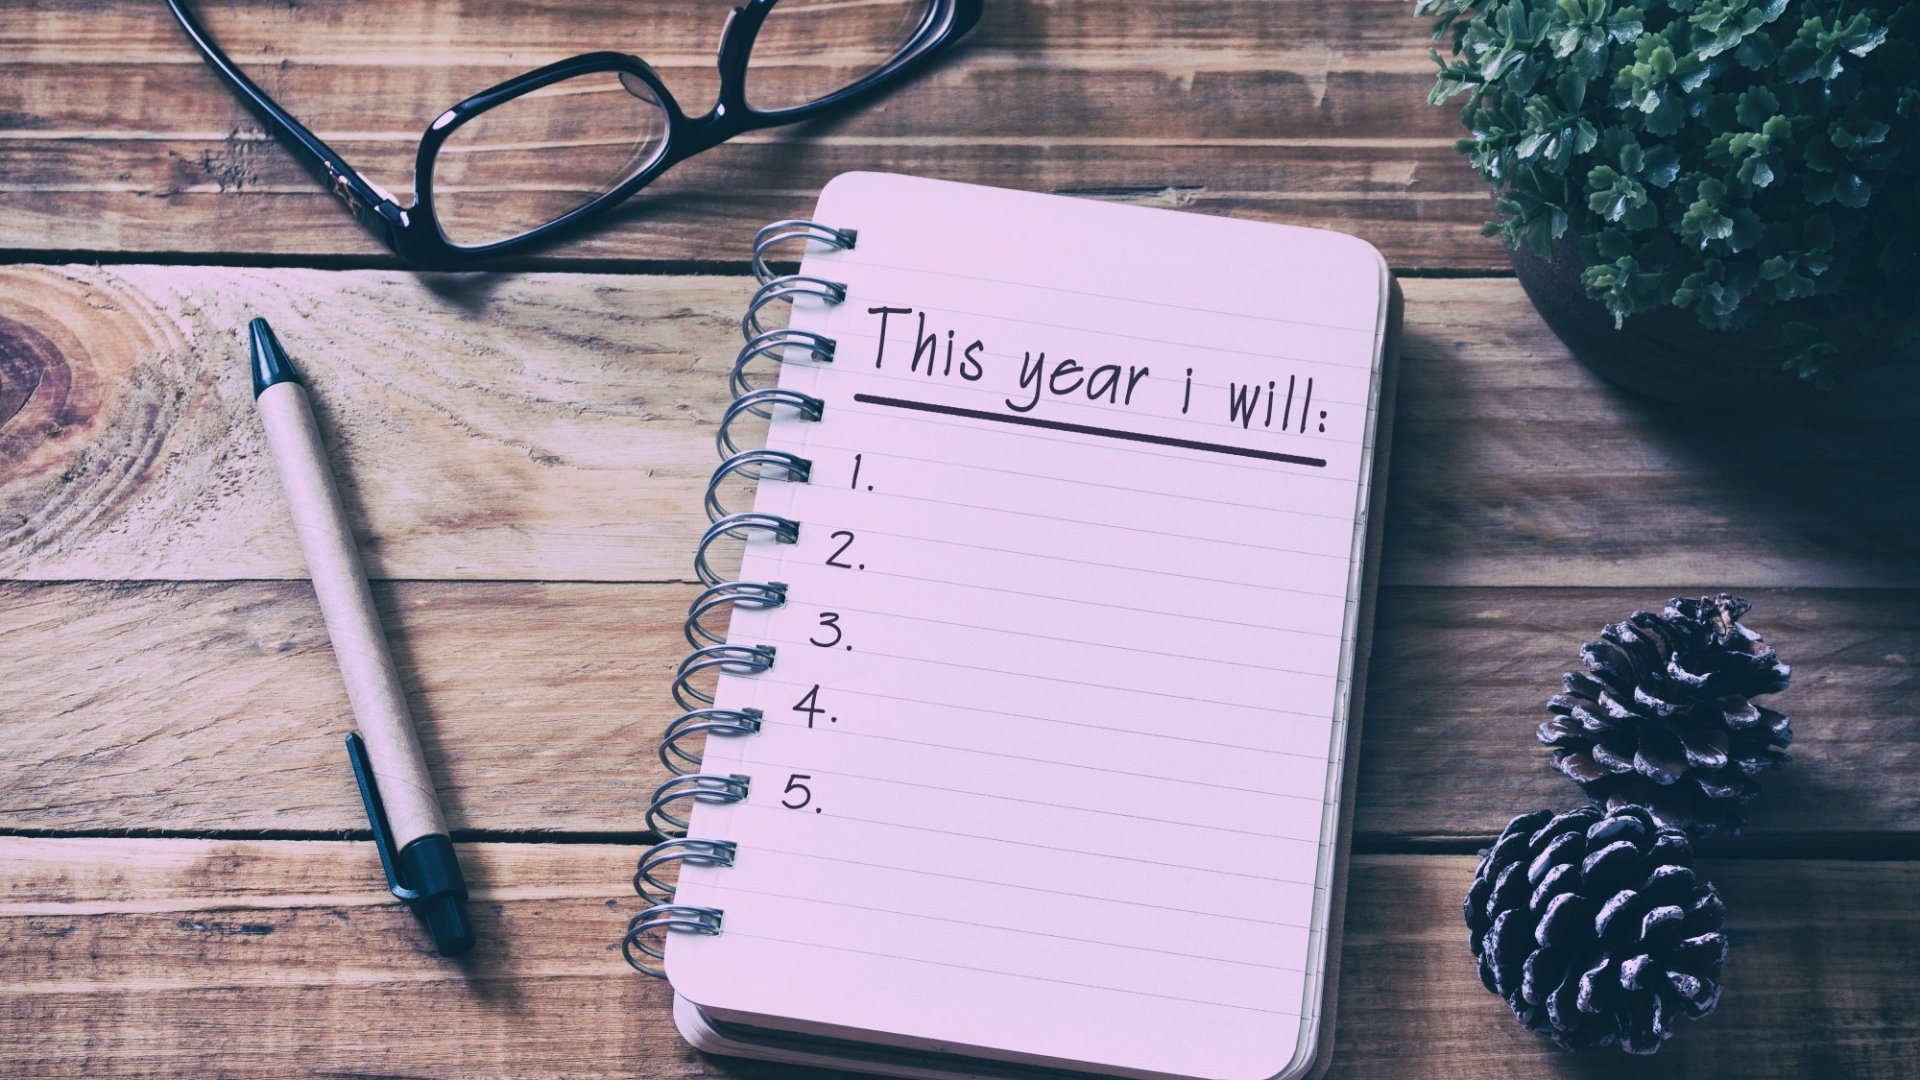 4 Resolutions to Grow Your Business in 2020